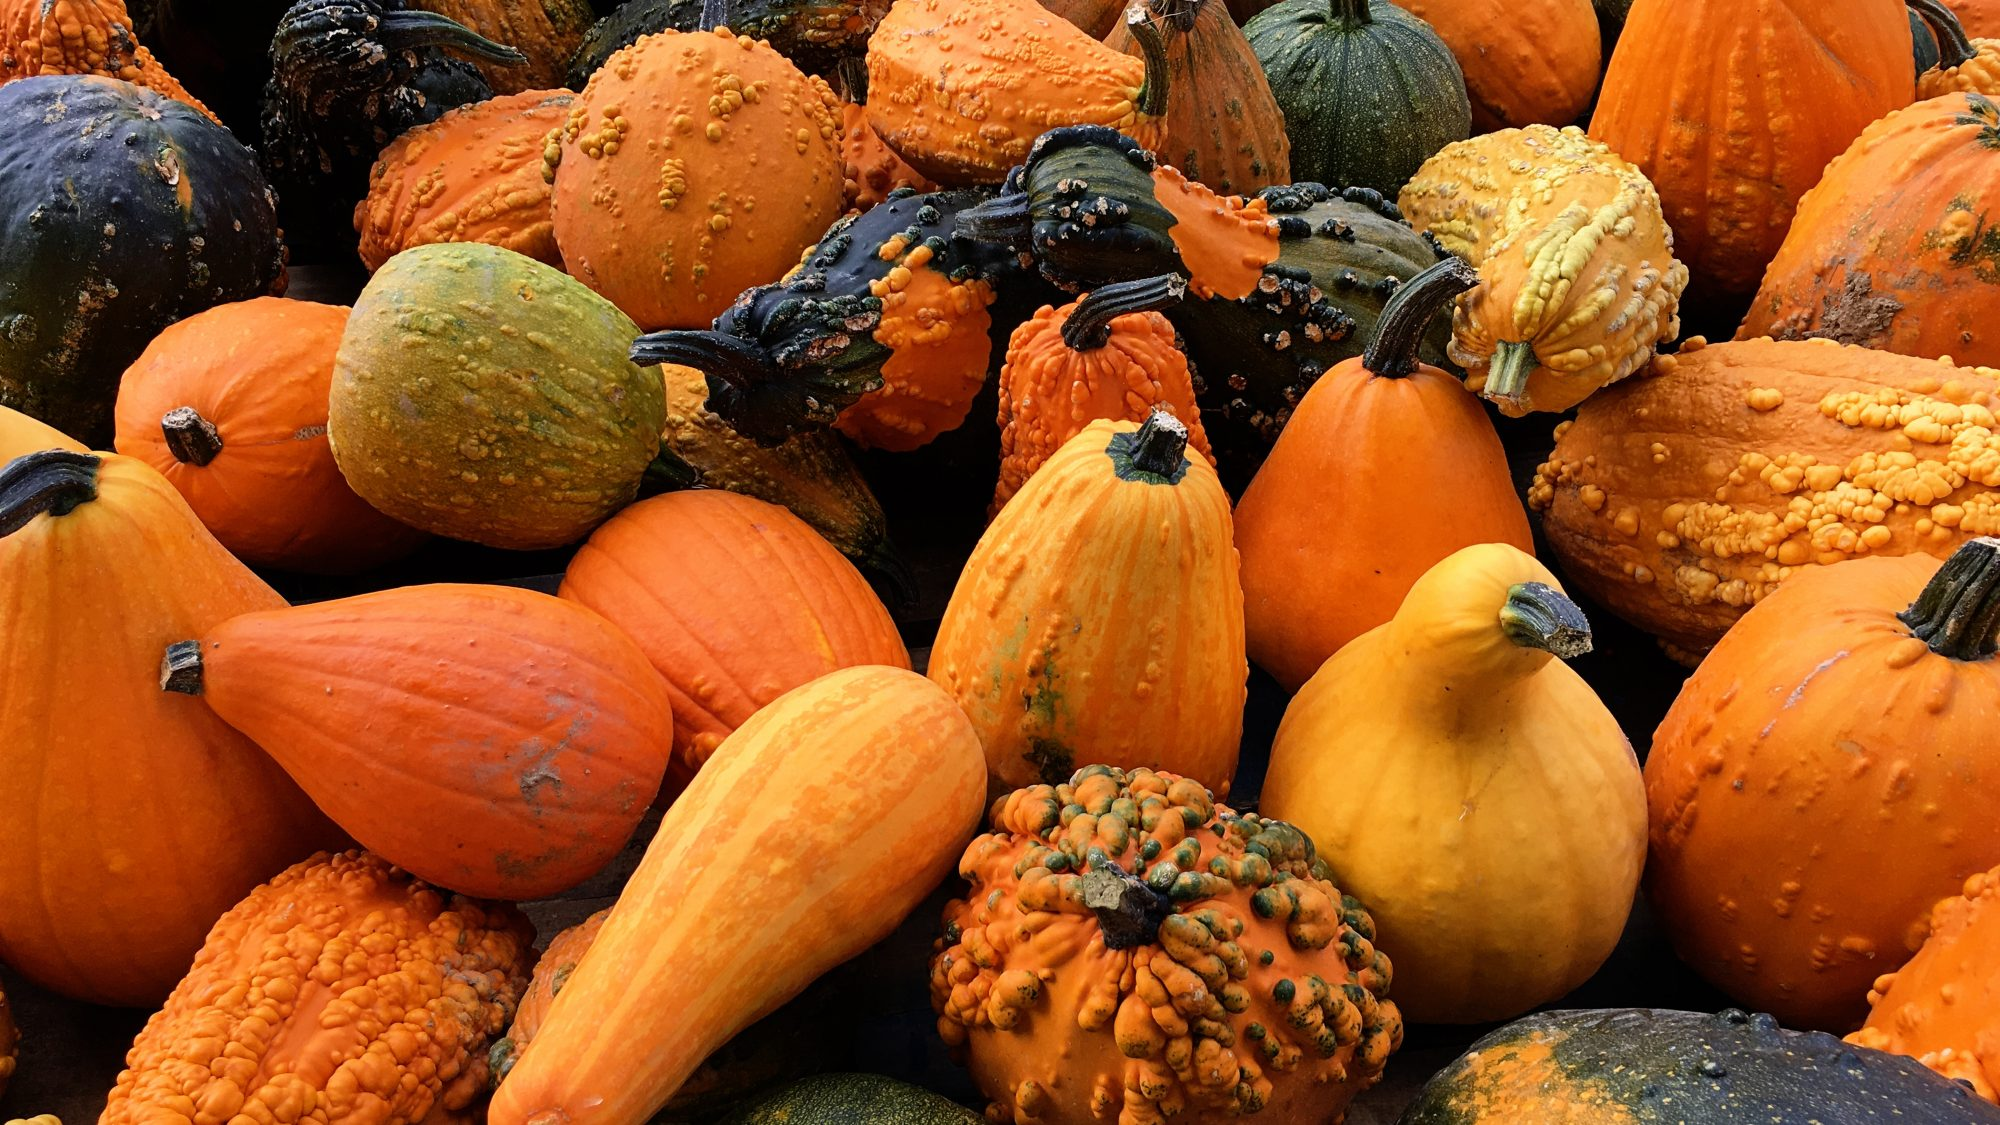 A mass of orange, yellow and green squashes. pumpkins and gourds